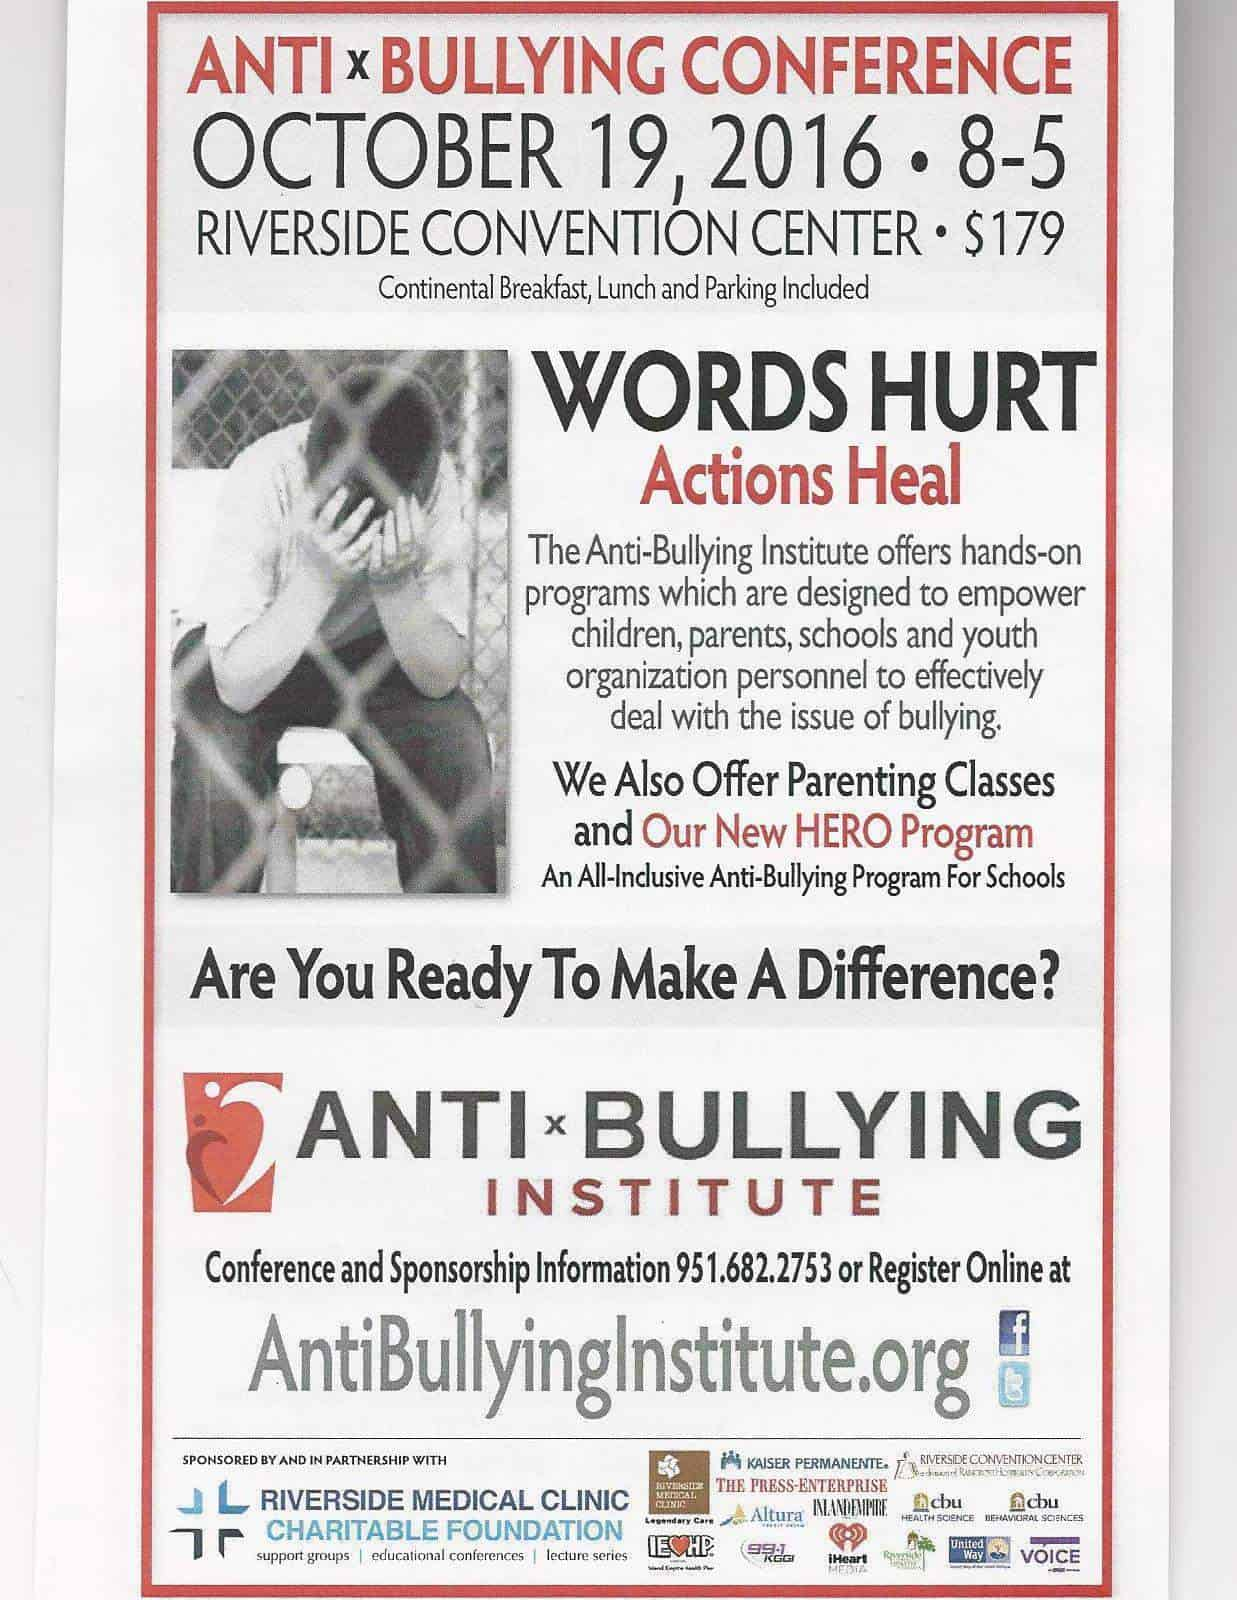 Just returned from The Anti-Bullying Institute (of Southern California) Annual Conference presenting